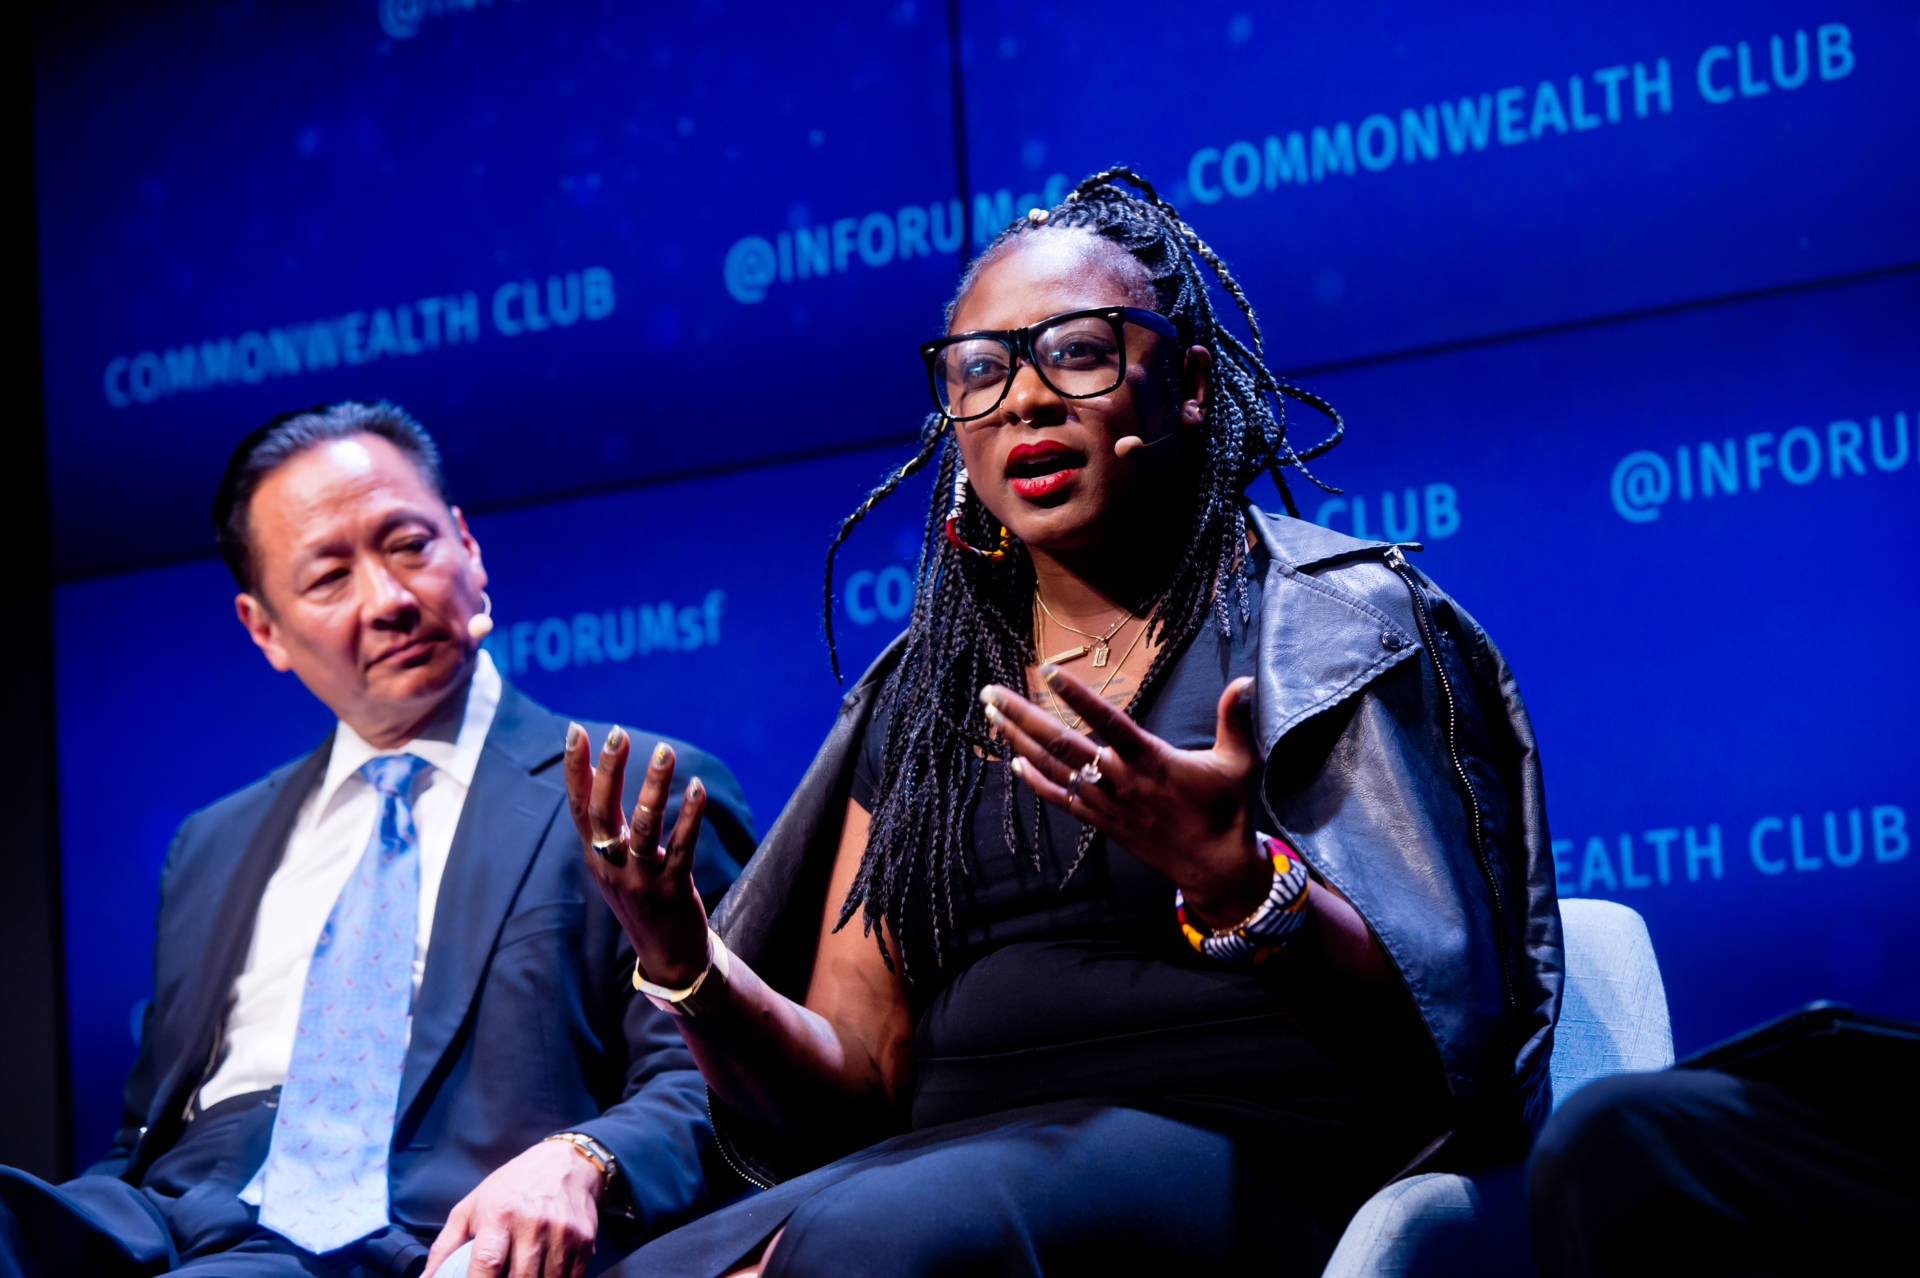 Alicia Garza (R) and Jeff Adachi (L) discuss the intersection of policy and racism at the Commonwealth Club on June 4, 2018. Alain McLaughlin/Alain McLaughlin Photography Inc